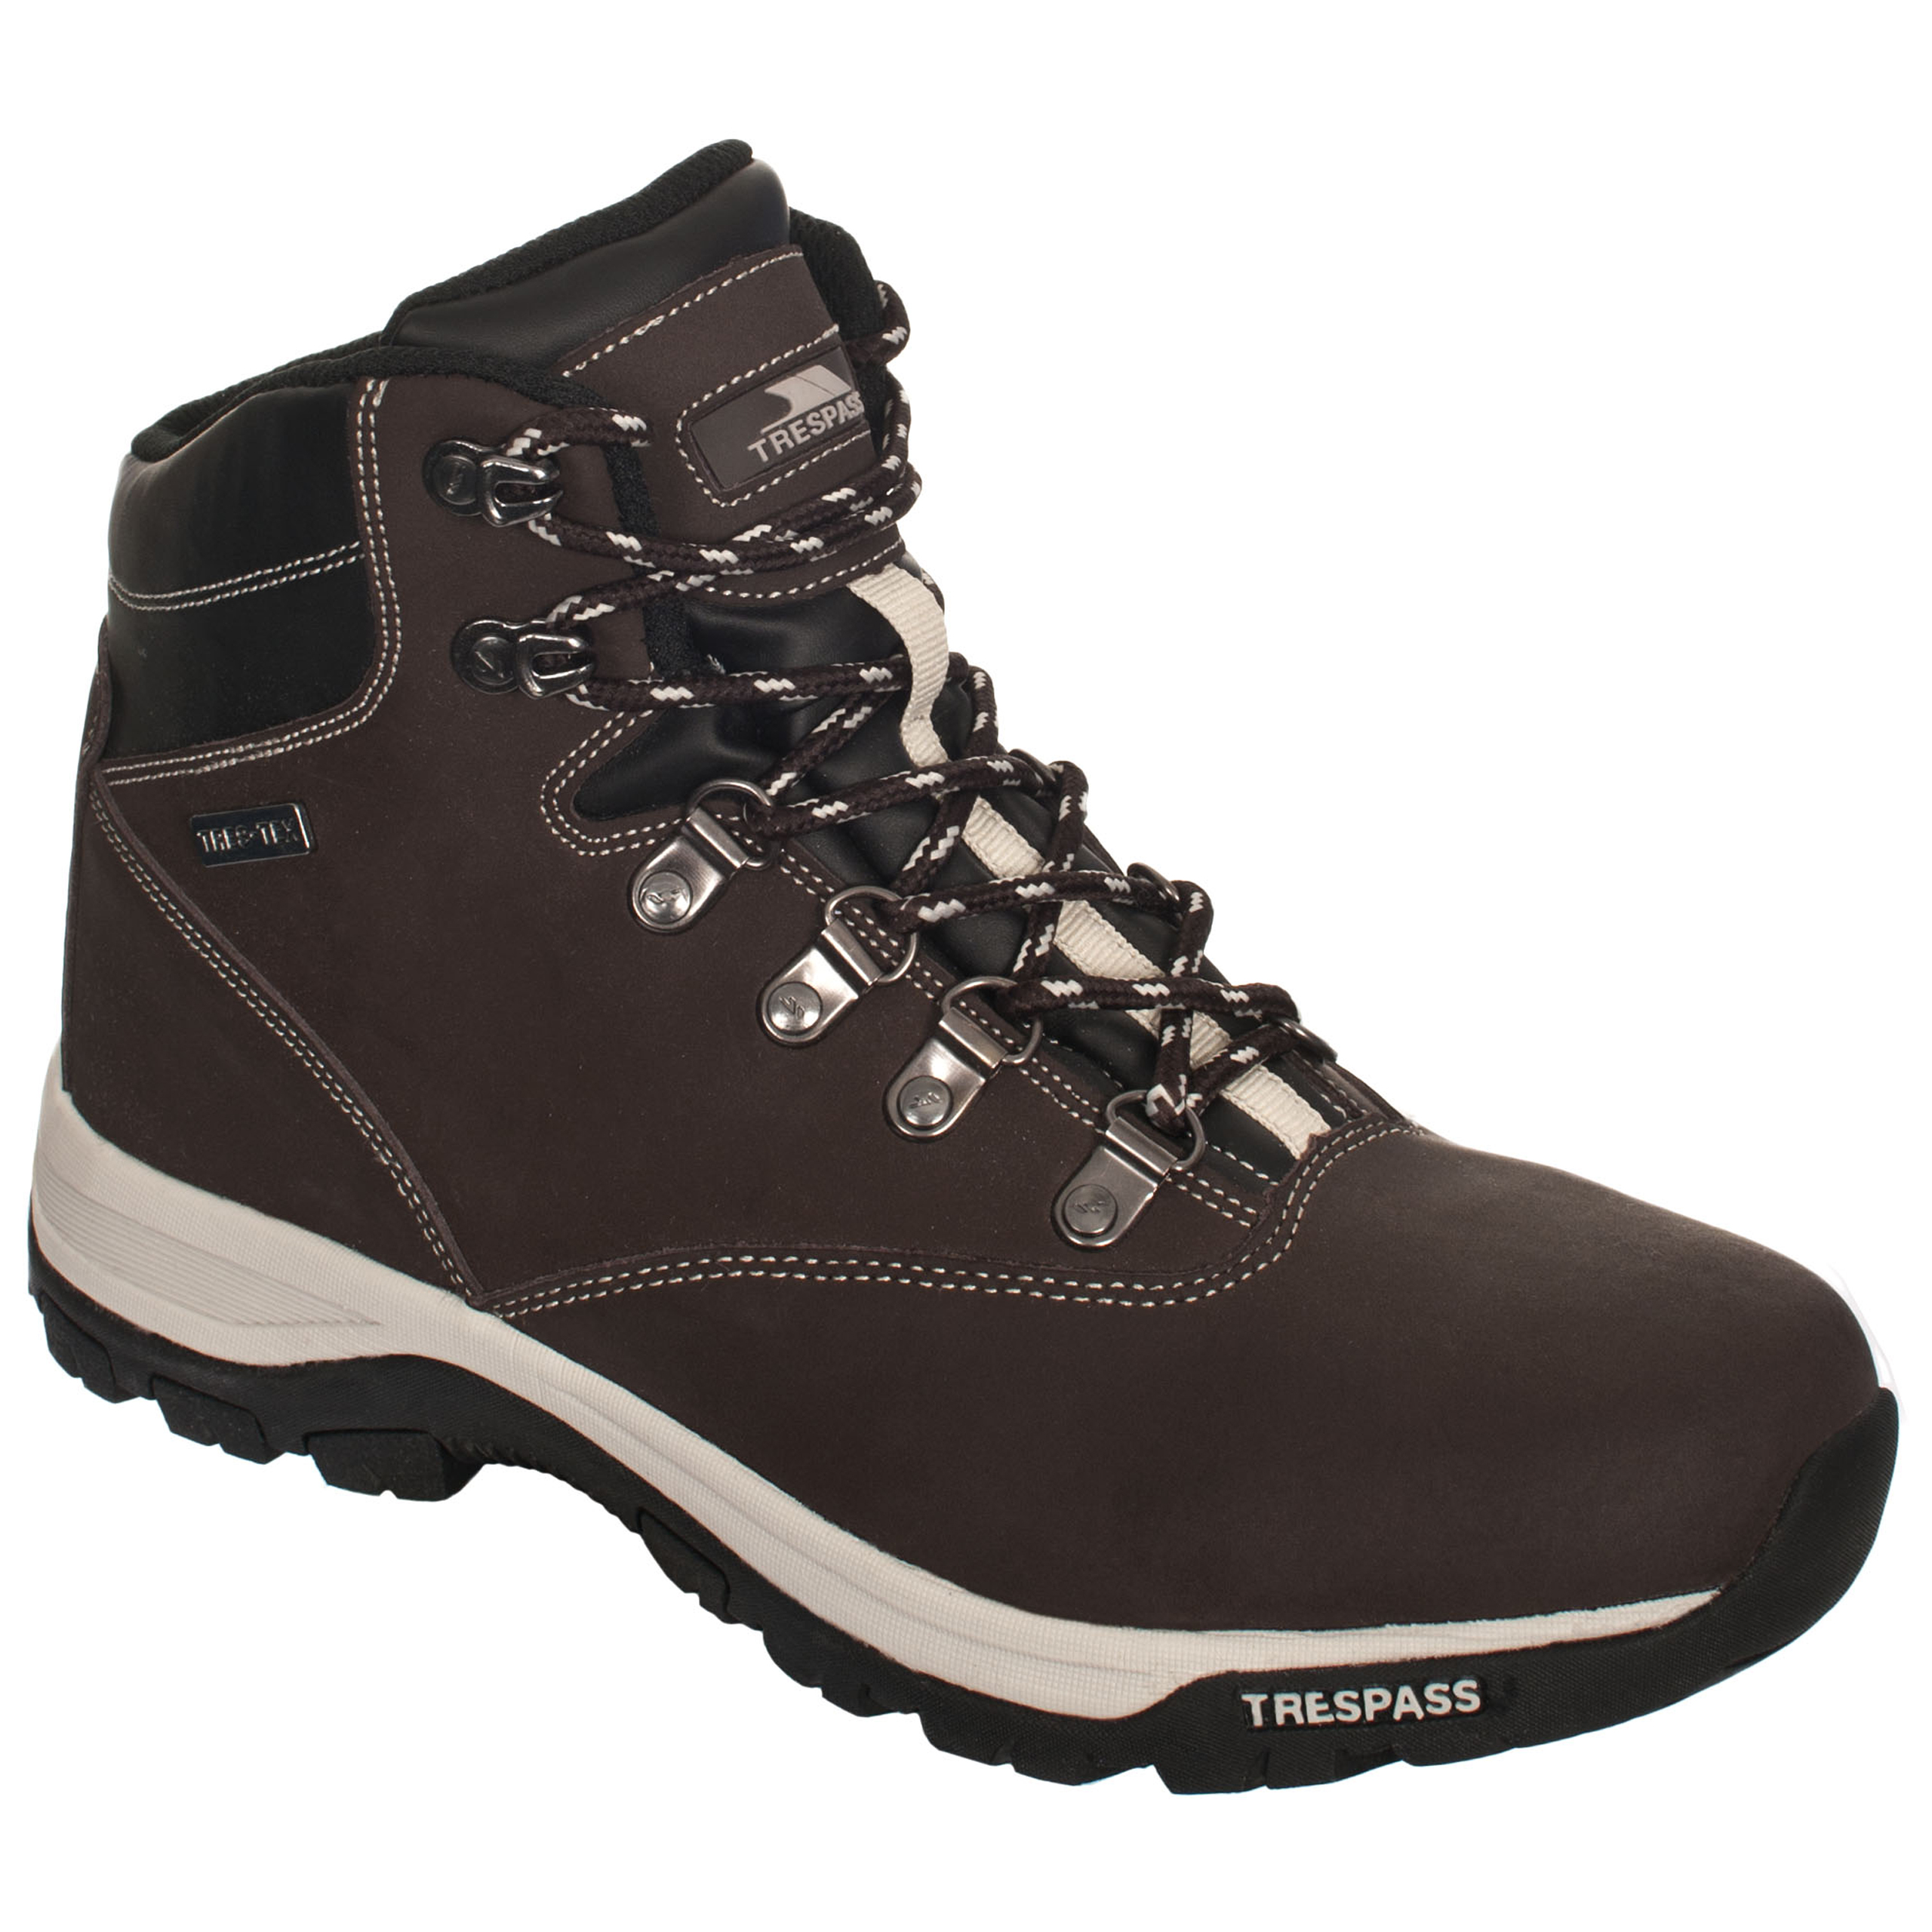 trespass novelo mens leather walking boots waterproof